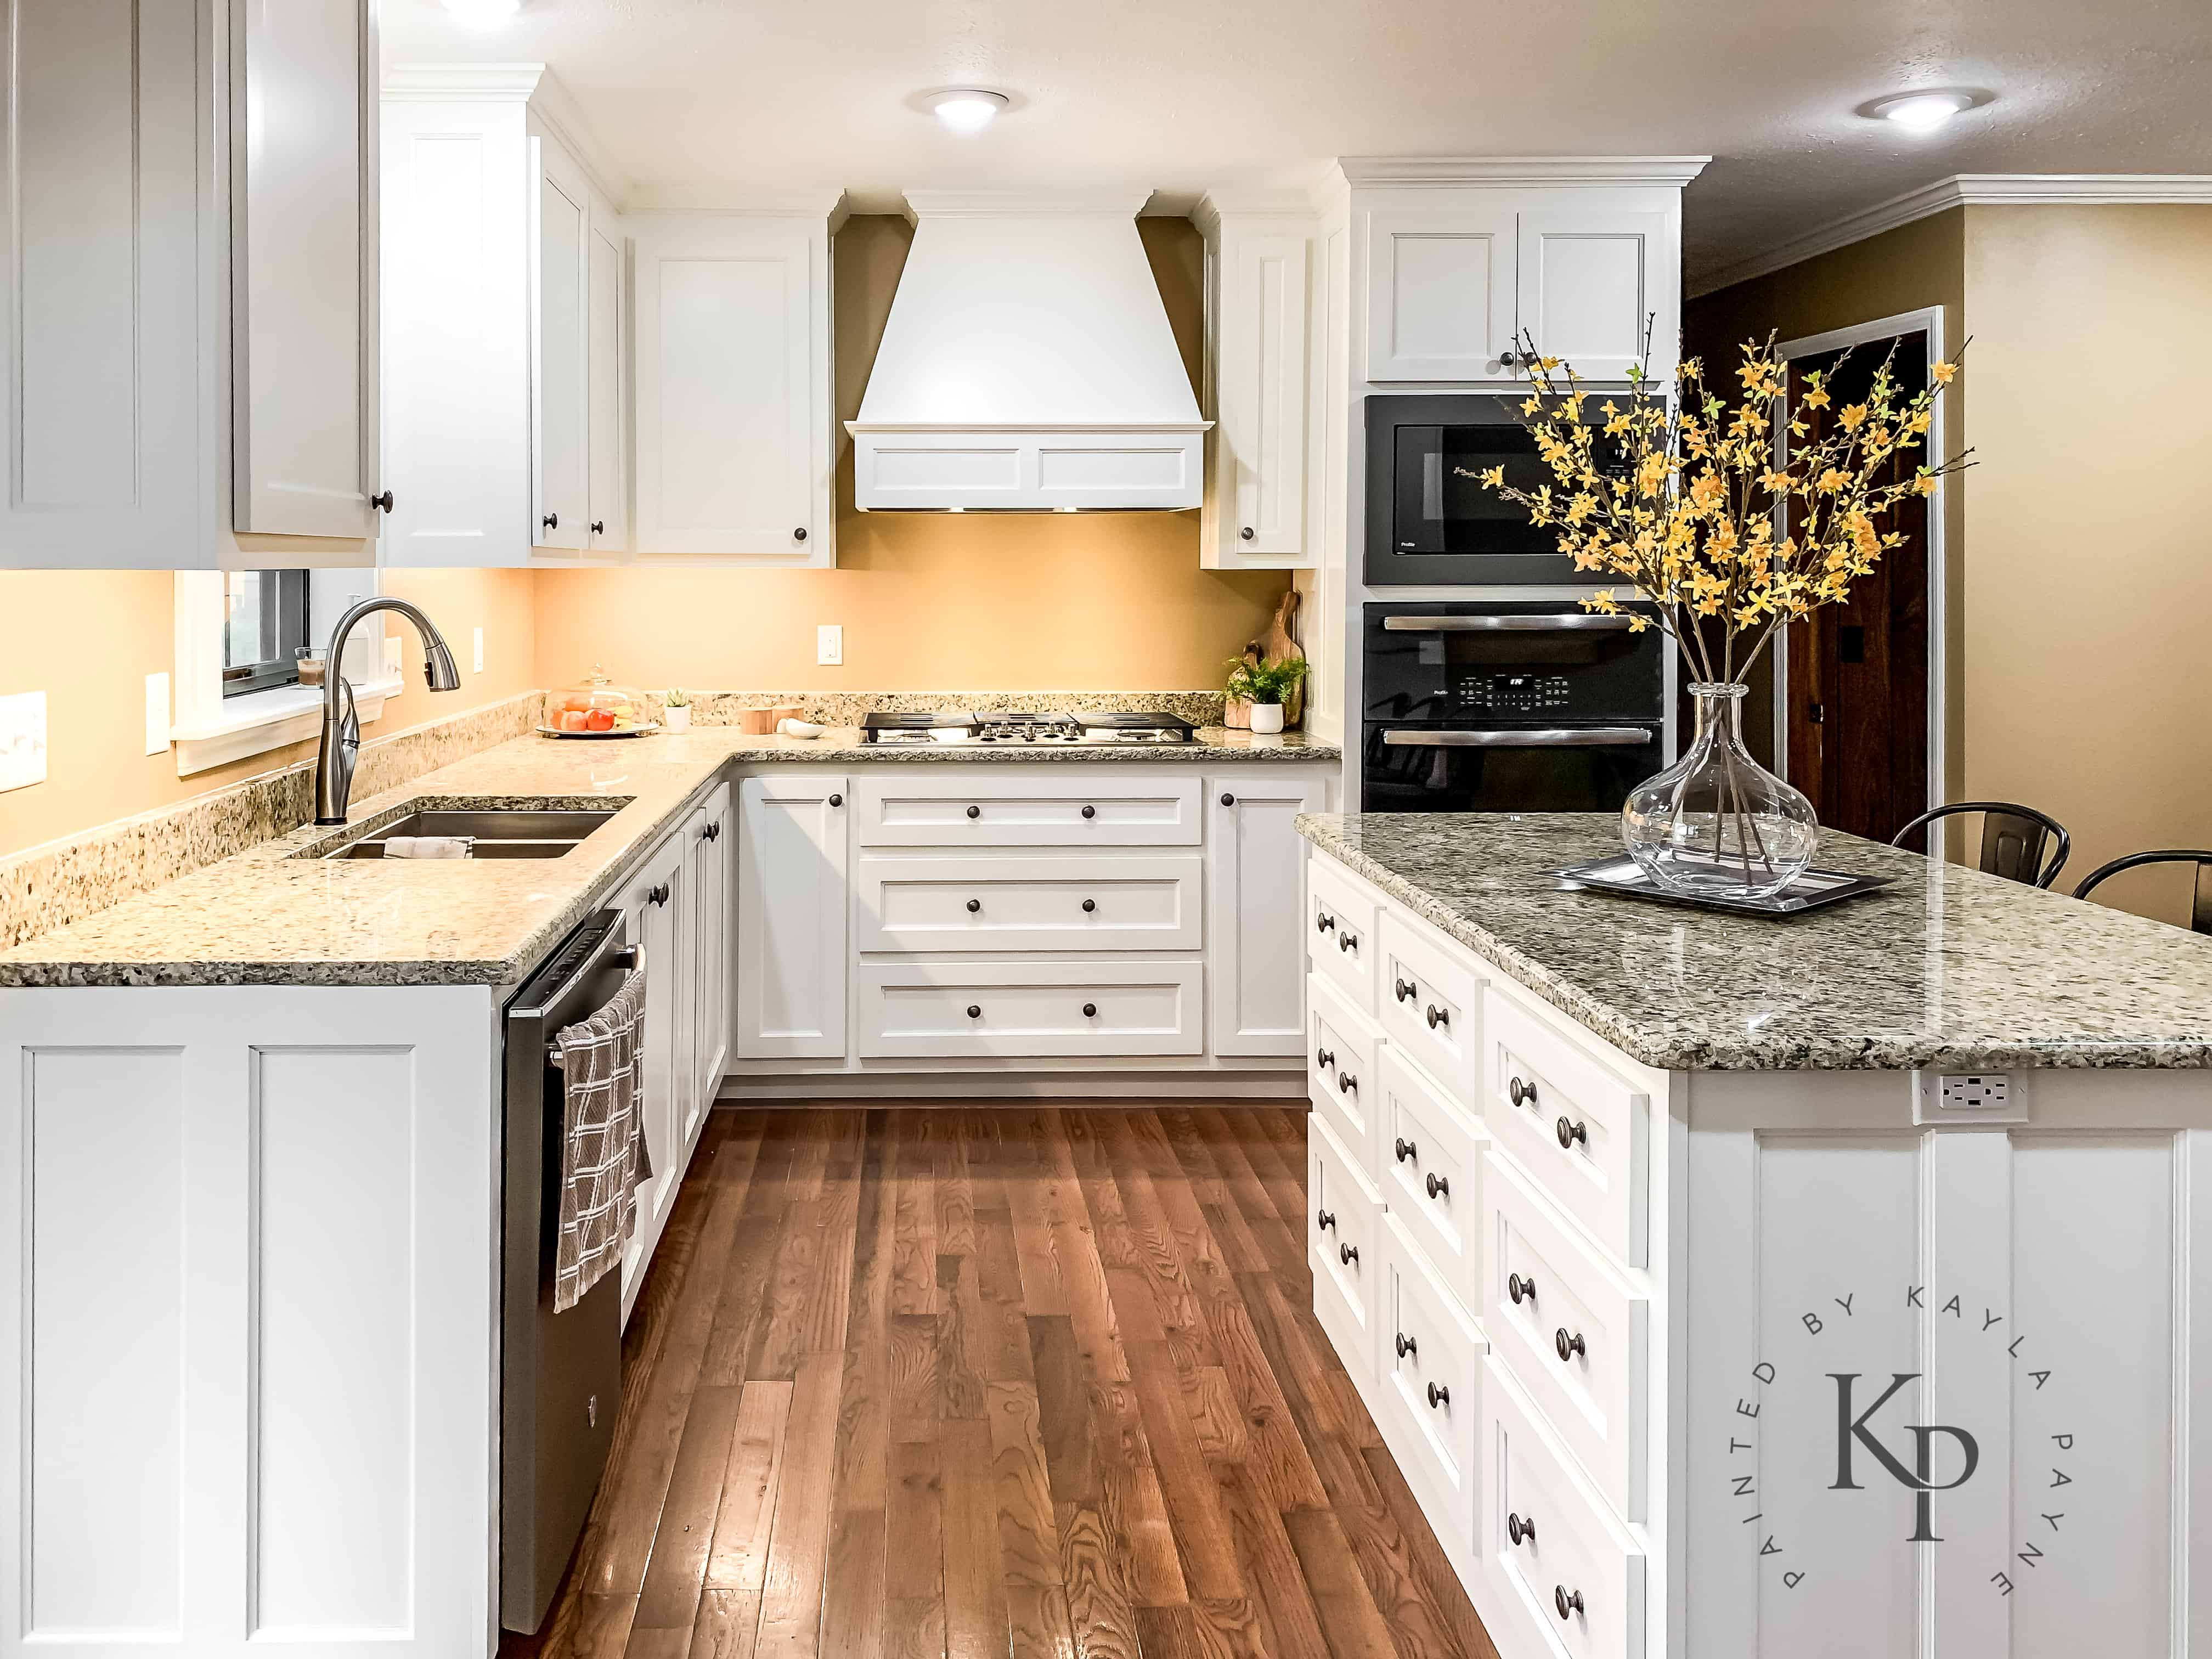 Photos Of White Kitchen Cabinets Kitchen Cabinets In Sherwin Williams Dover White Painted By